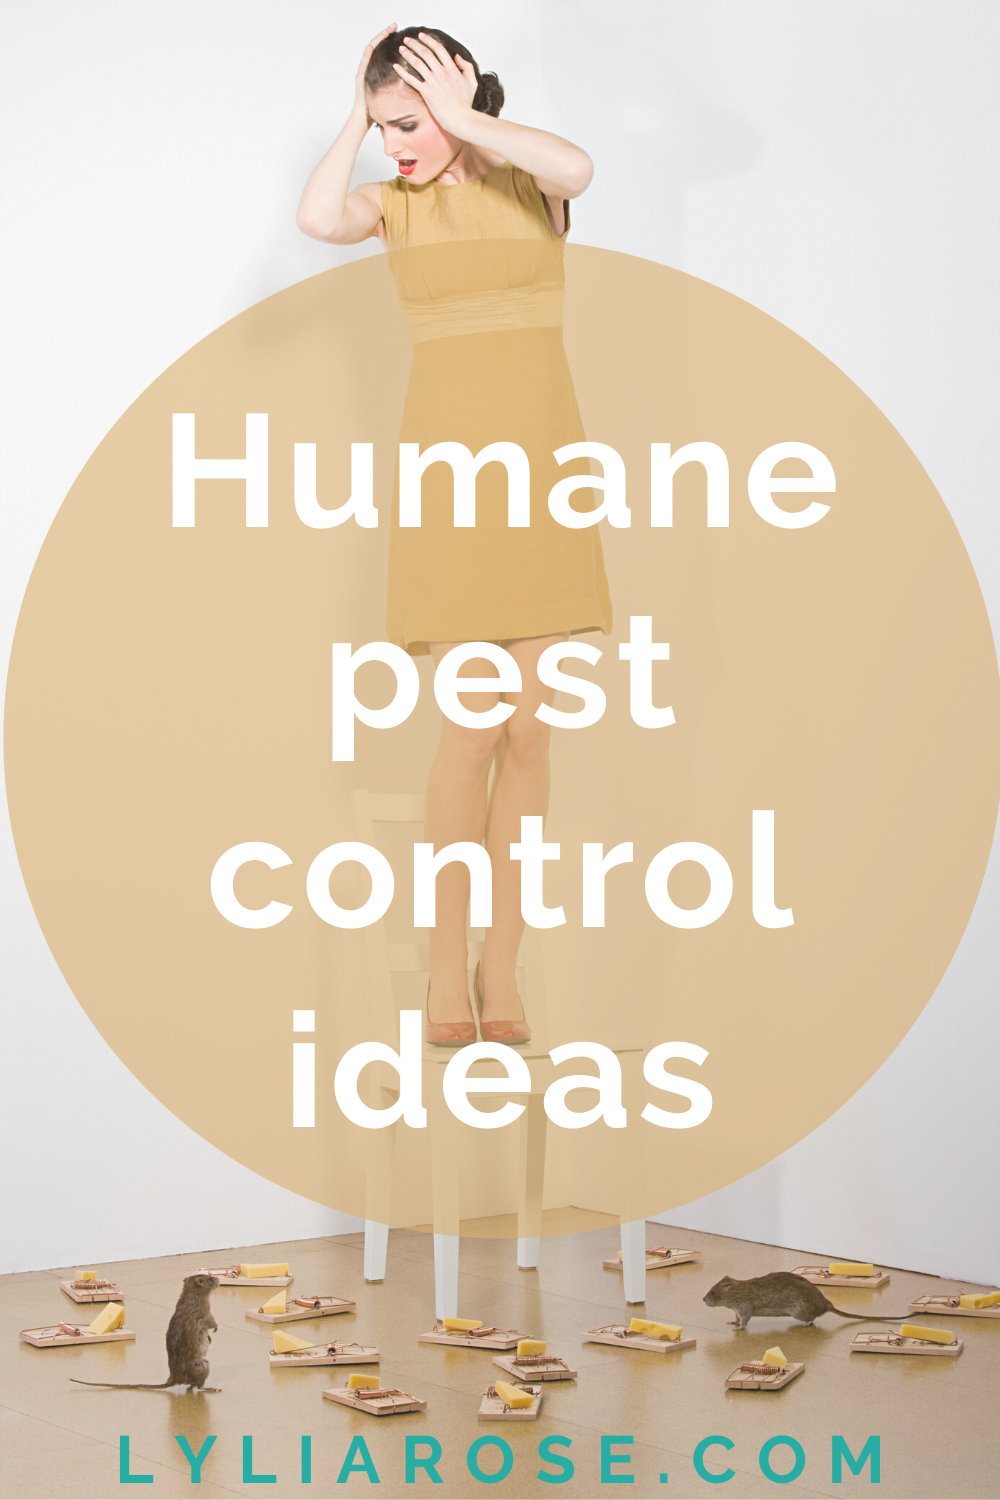 Humane pest control ideas